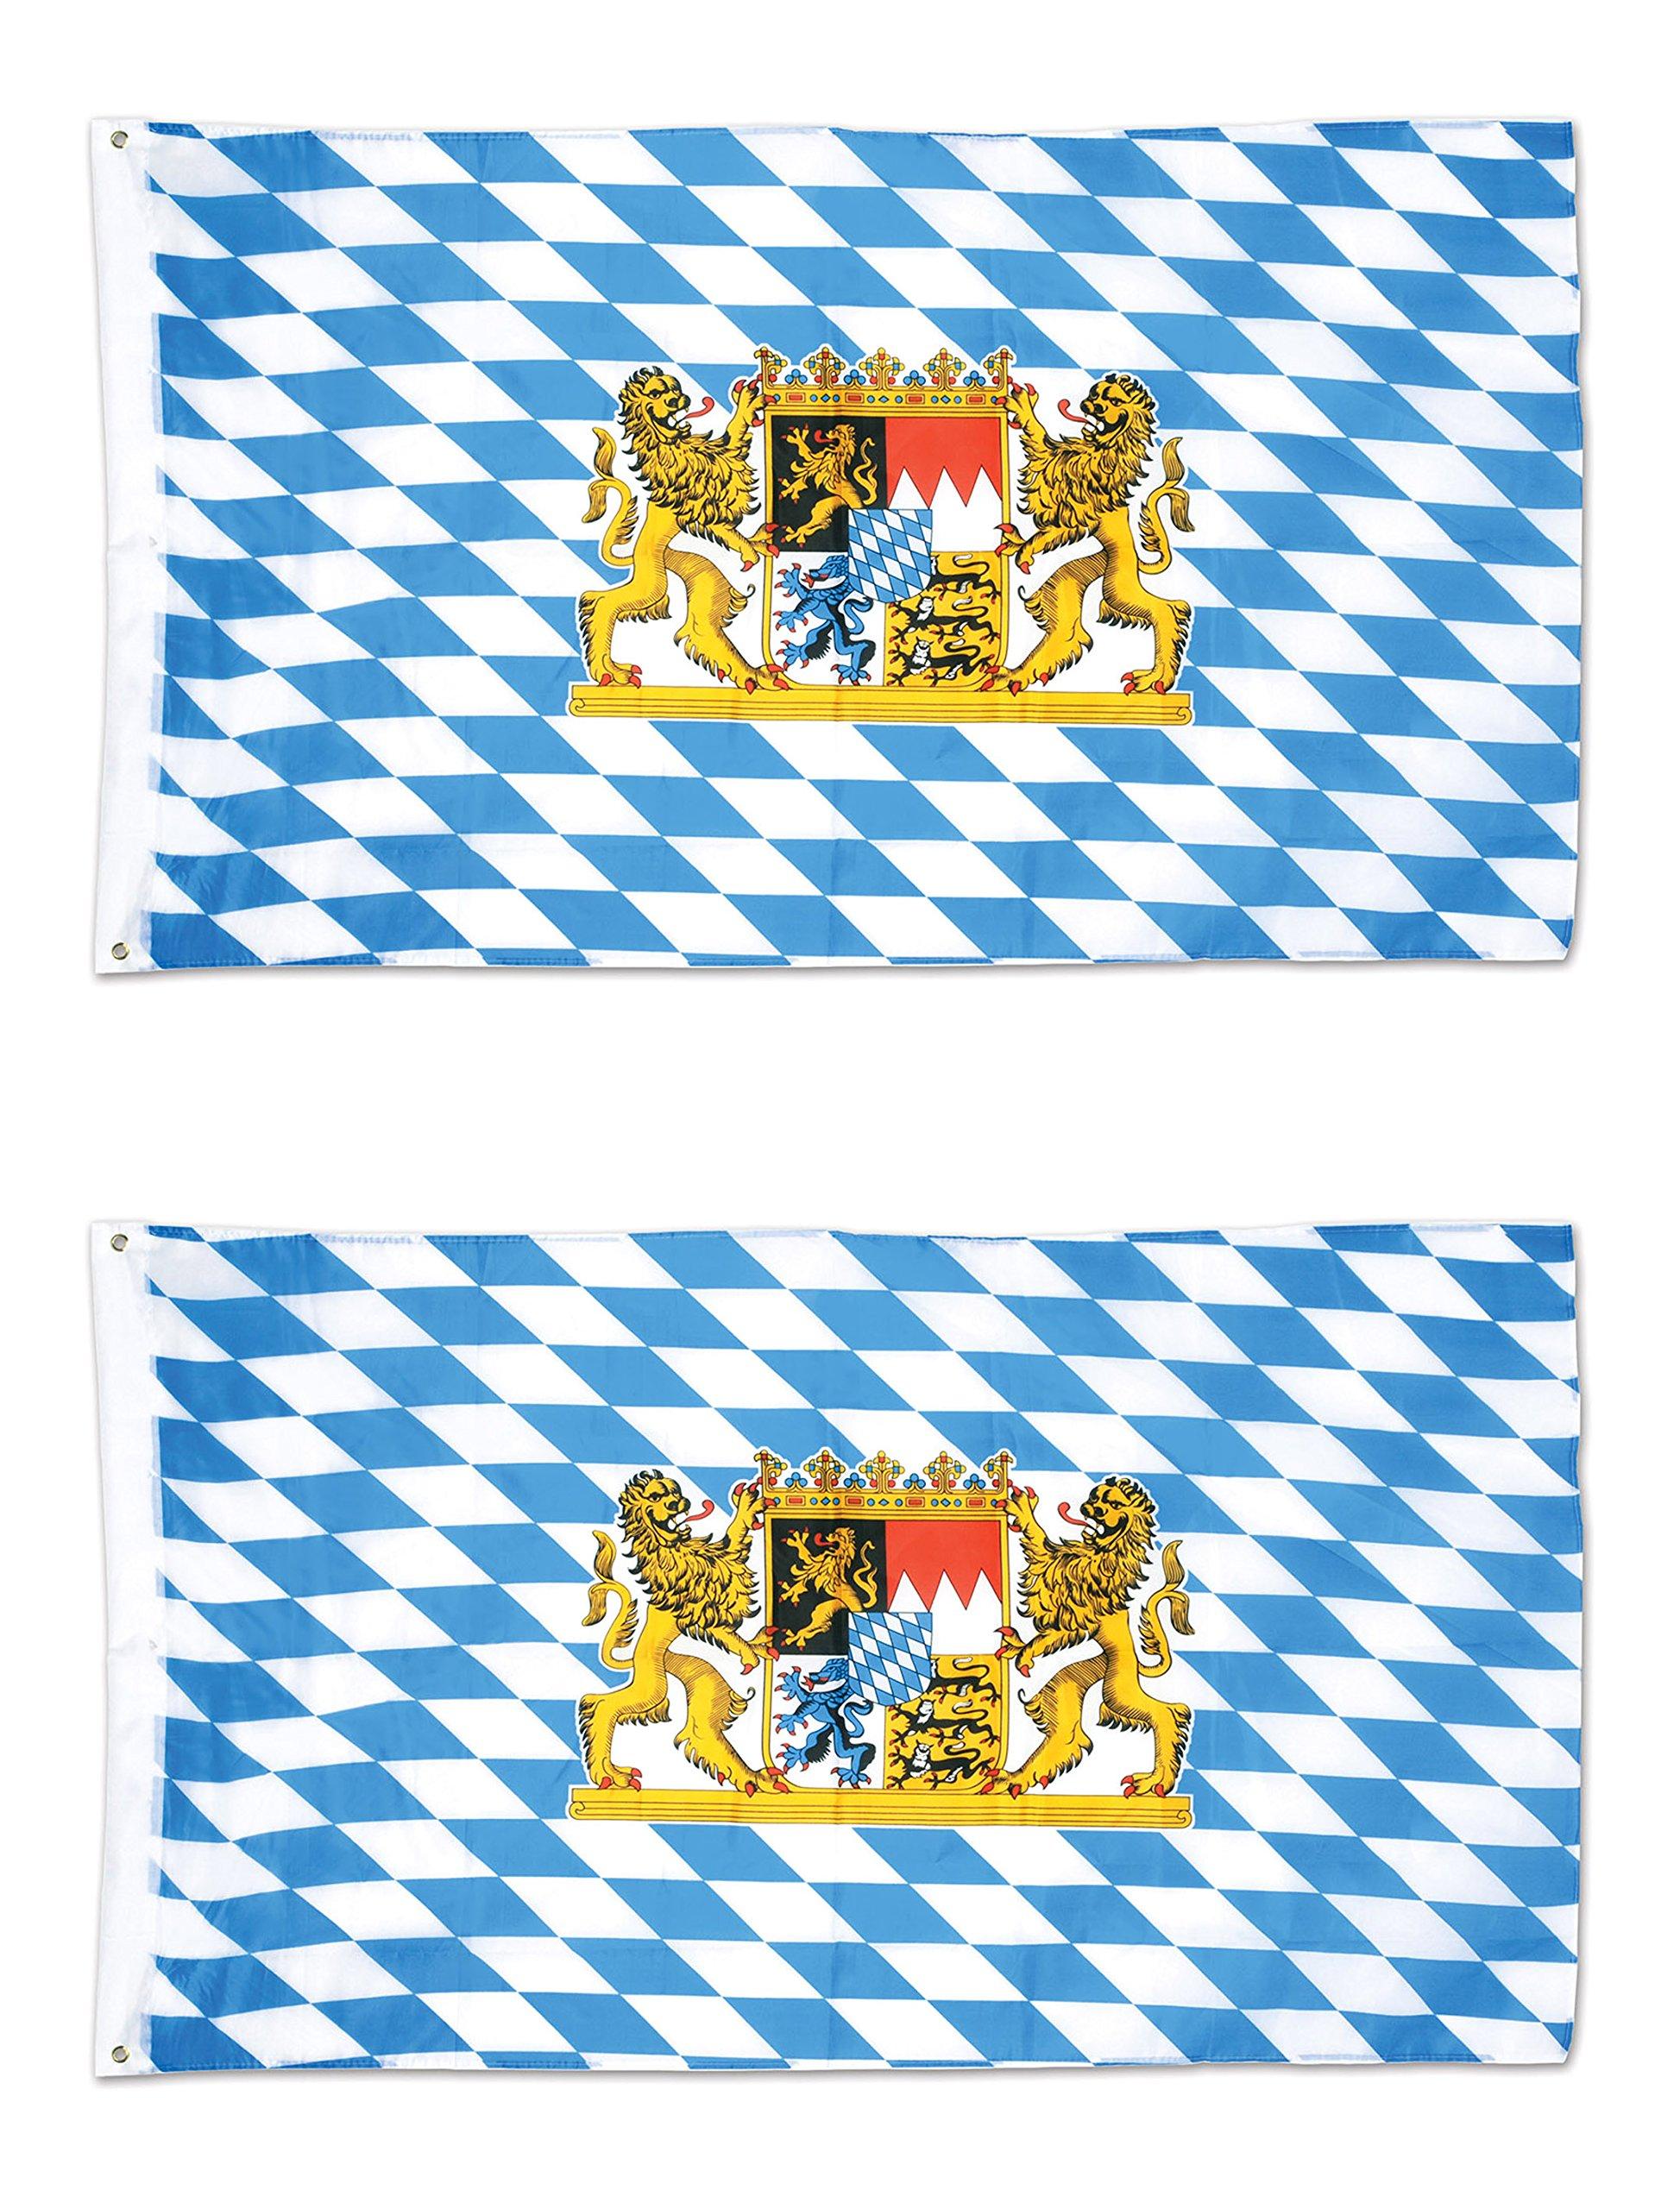 Beistle 53332, 2 Piece Bavarian Flags, 3' x 5' by Beistle